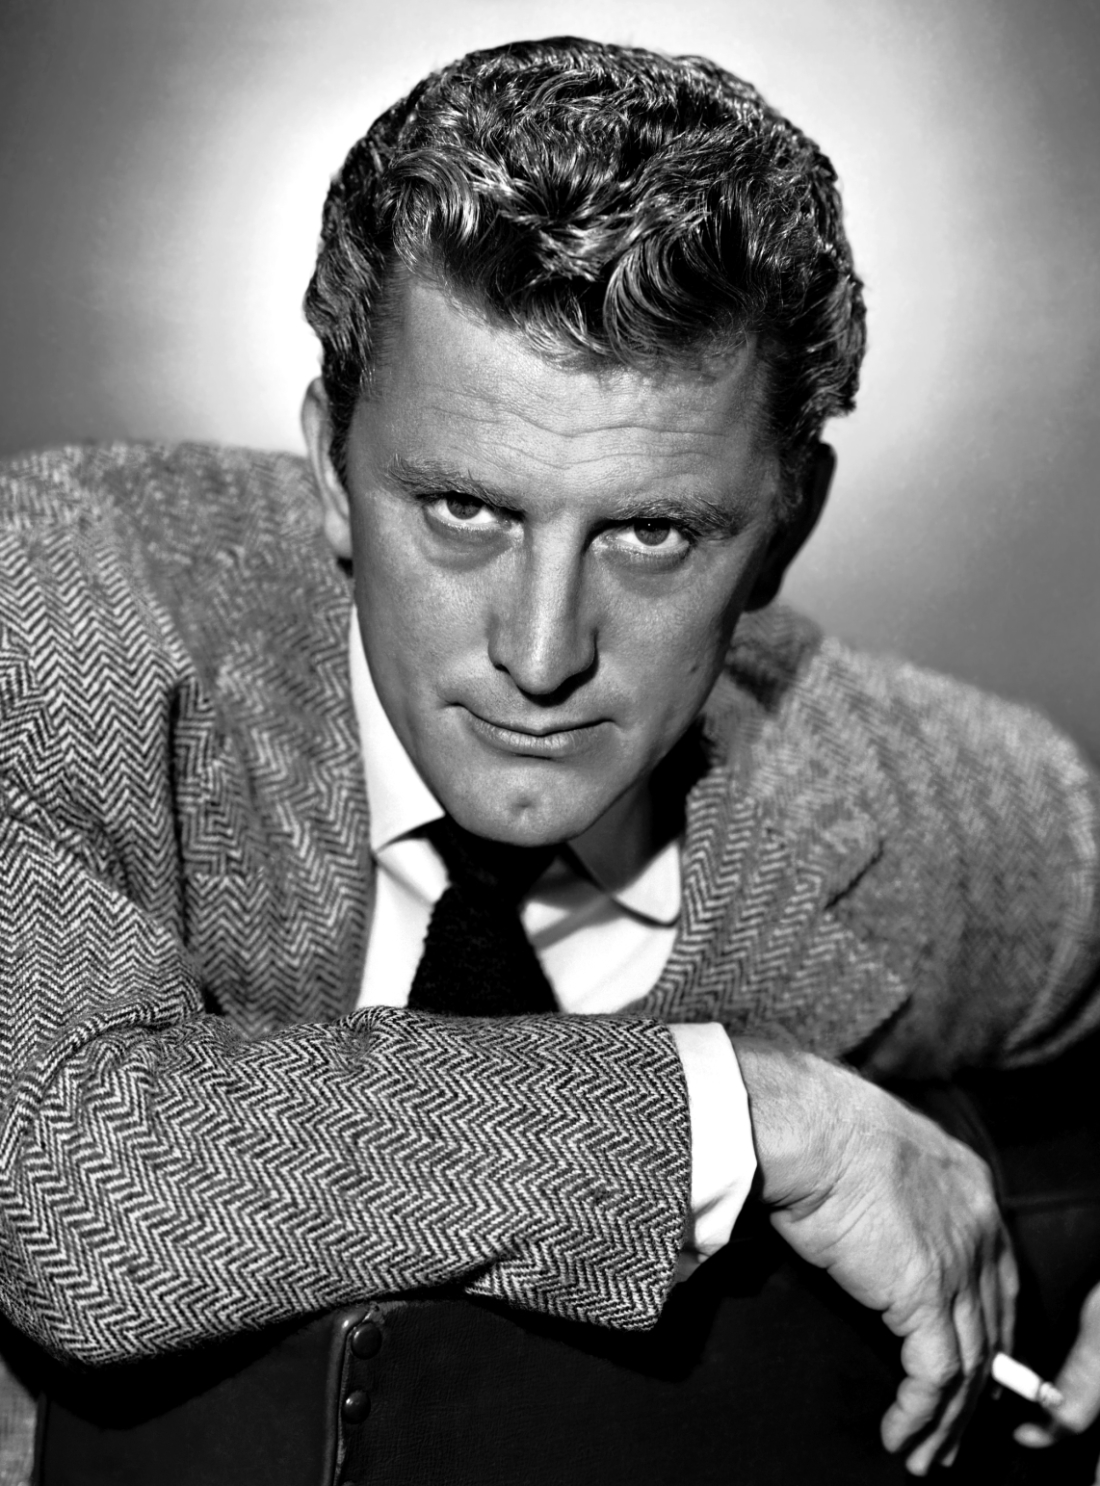 https://upload.wikimedia.org/wikipedia/commons/e/ed/Kirk_douglas_photo_signed.JPG